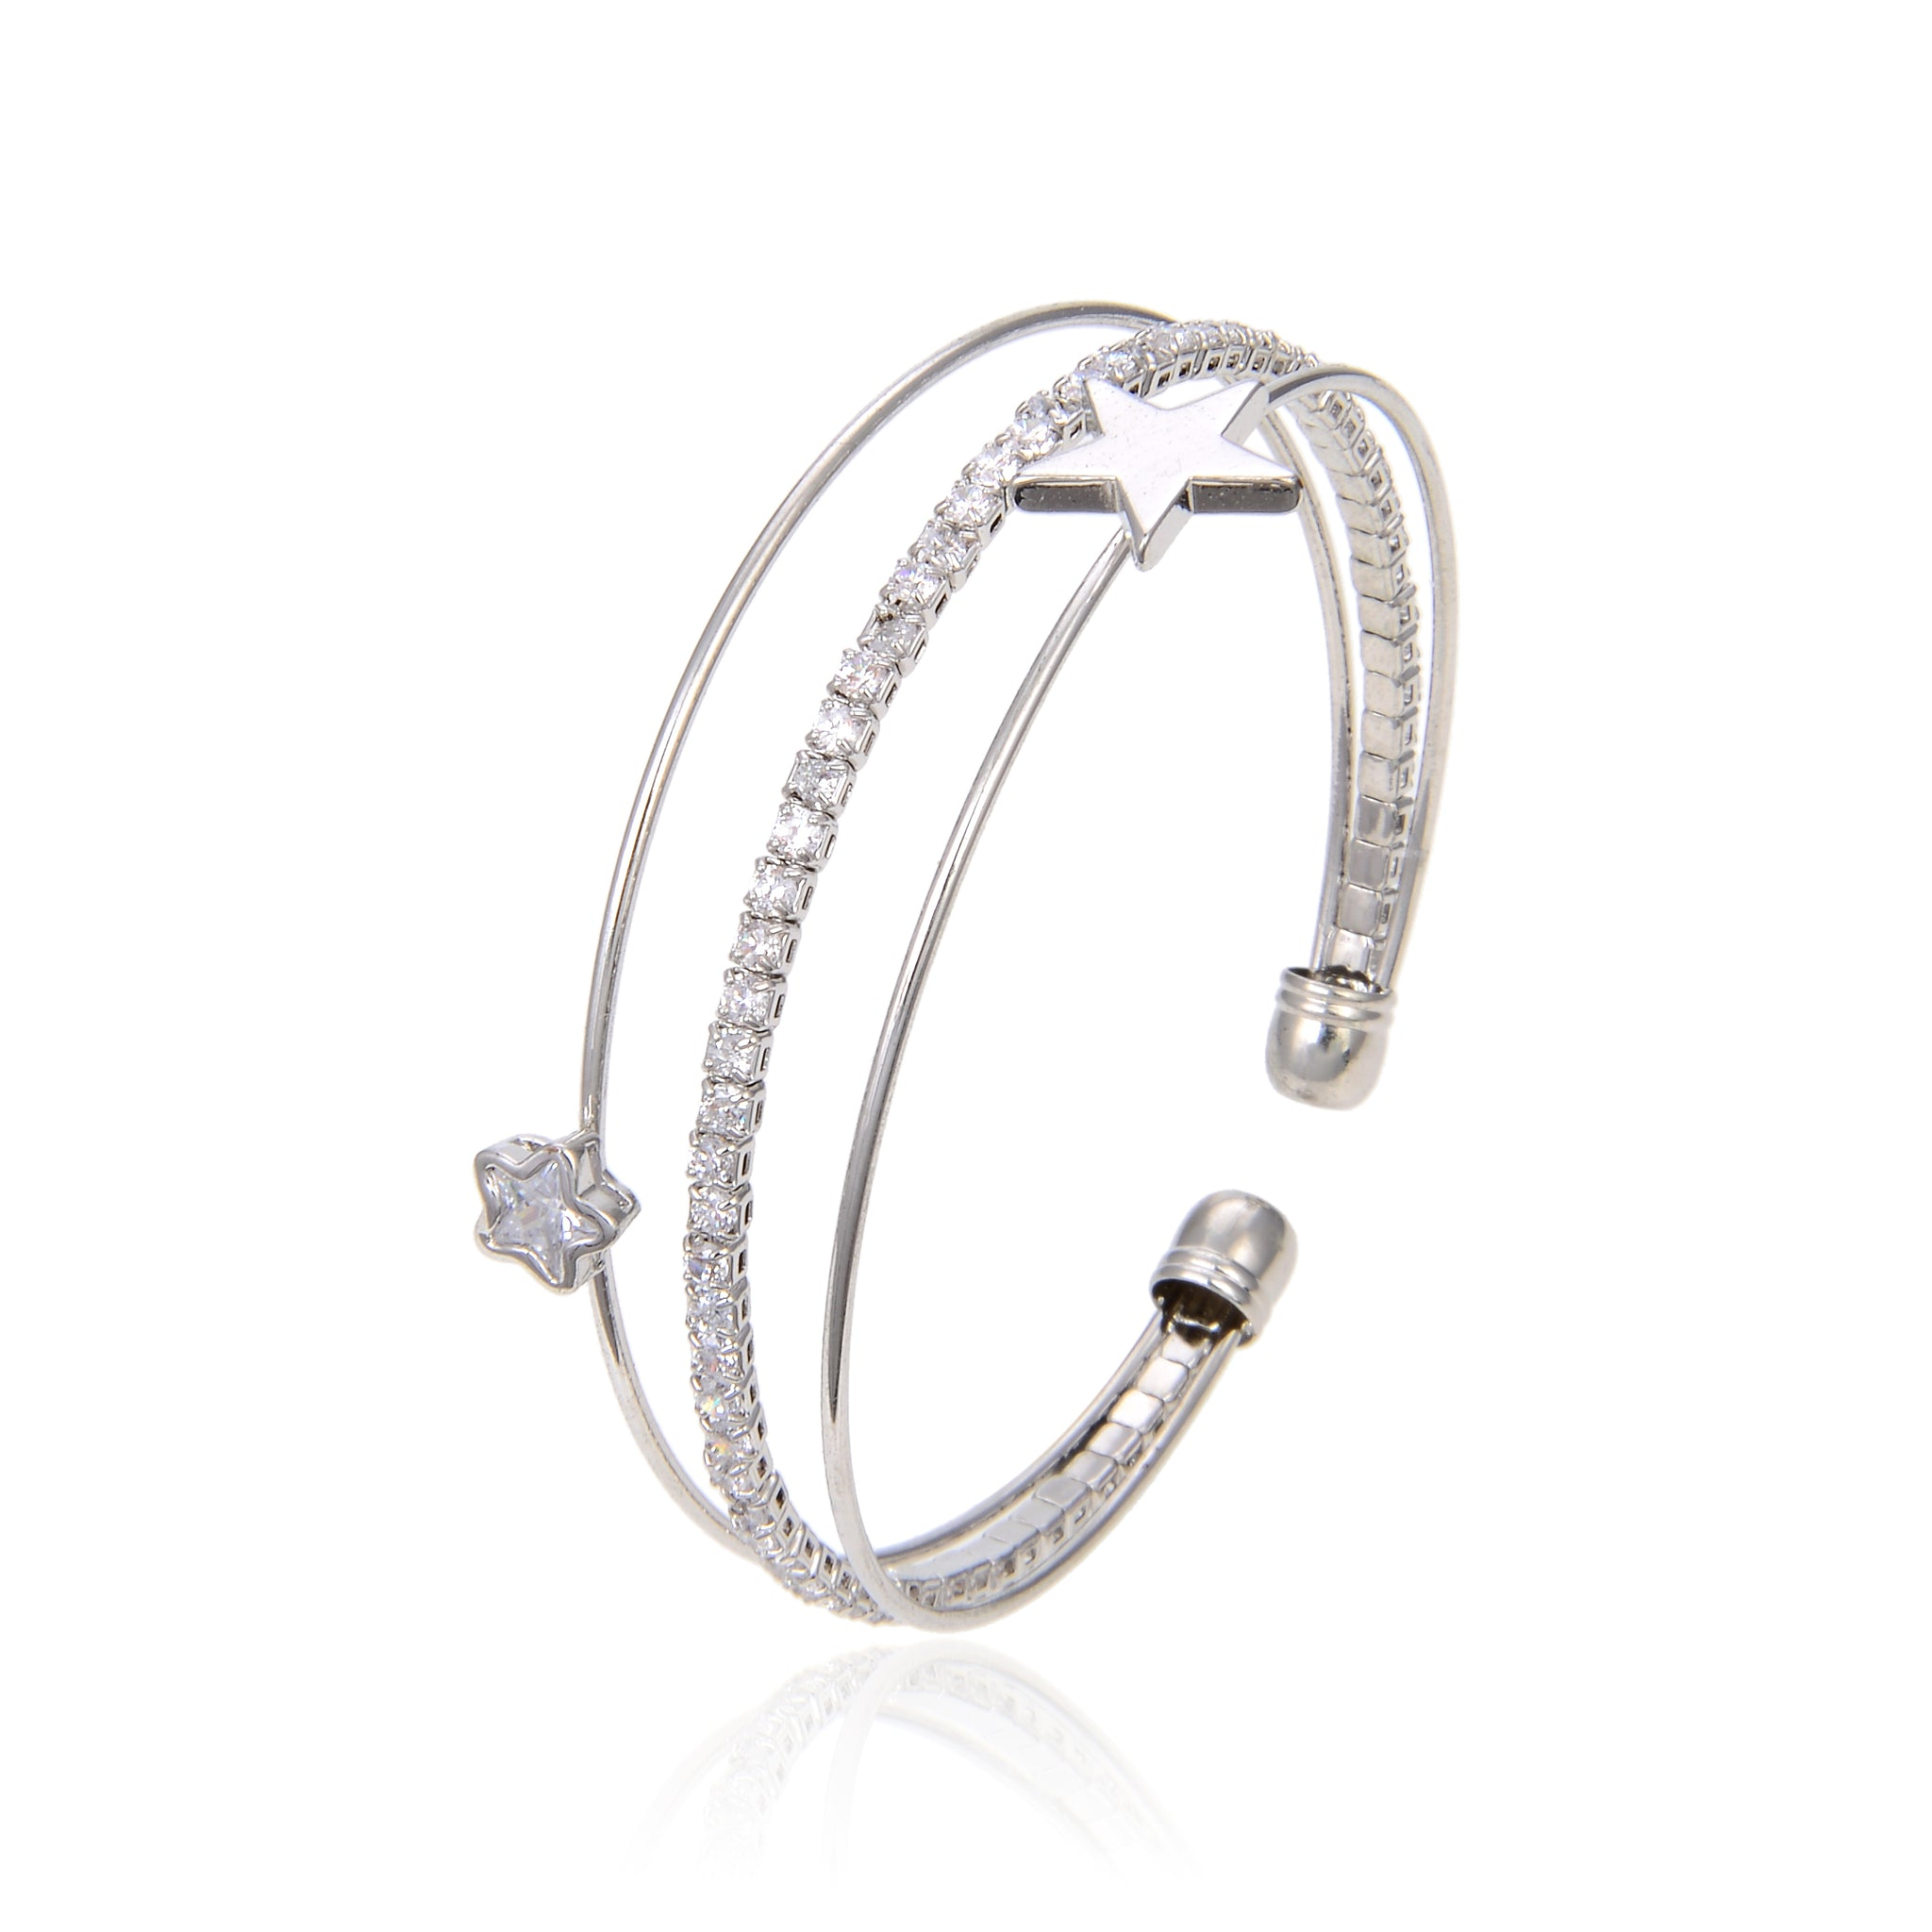 Silver Plated CZ Cubic Zirconia Bangle Bracelet, Star Shape Zircon Bangle Bracelet